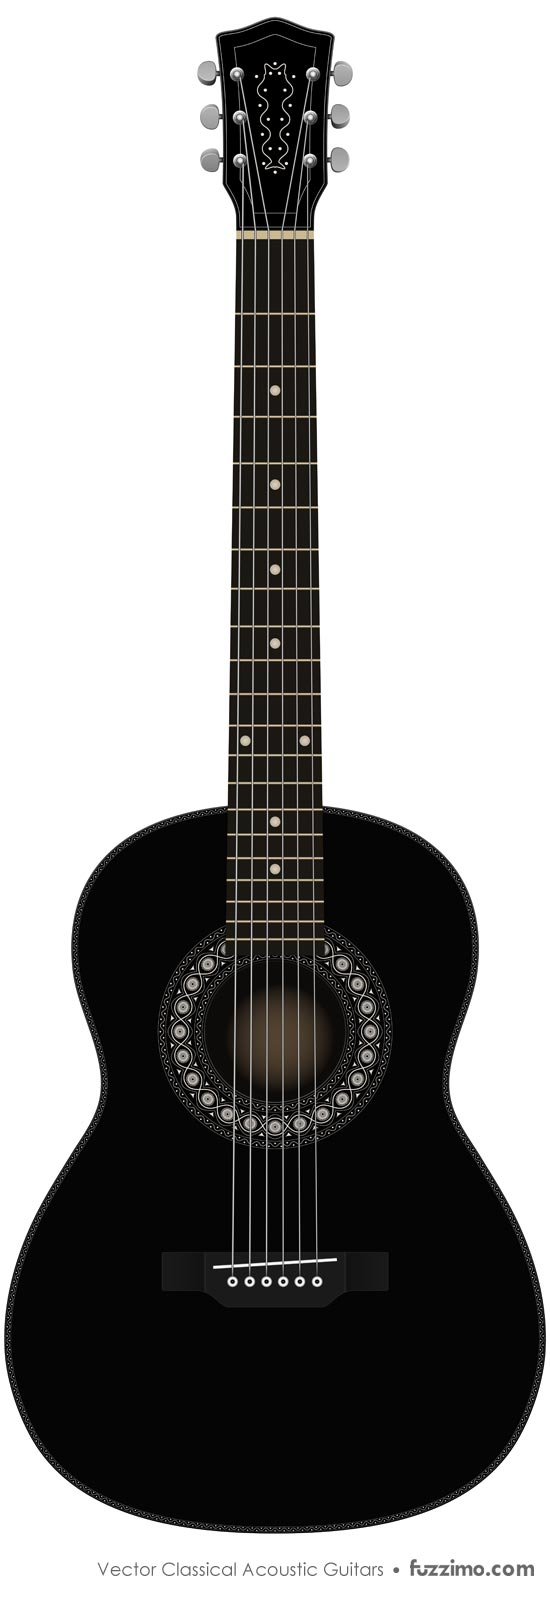 fzm-Vector-Classical-Acoustic-Guitars-03